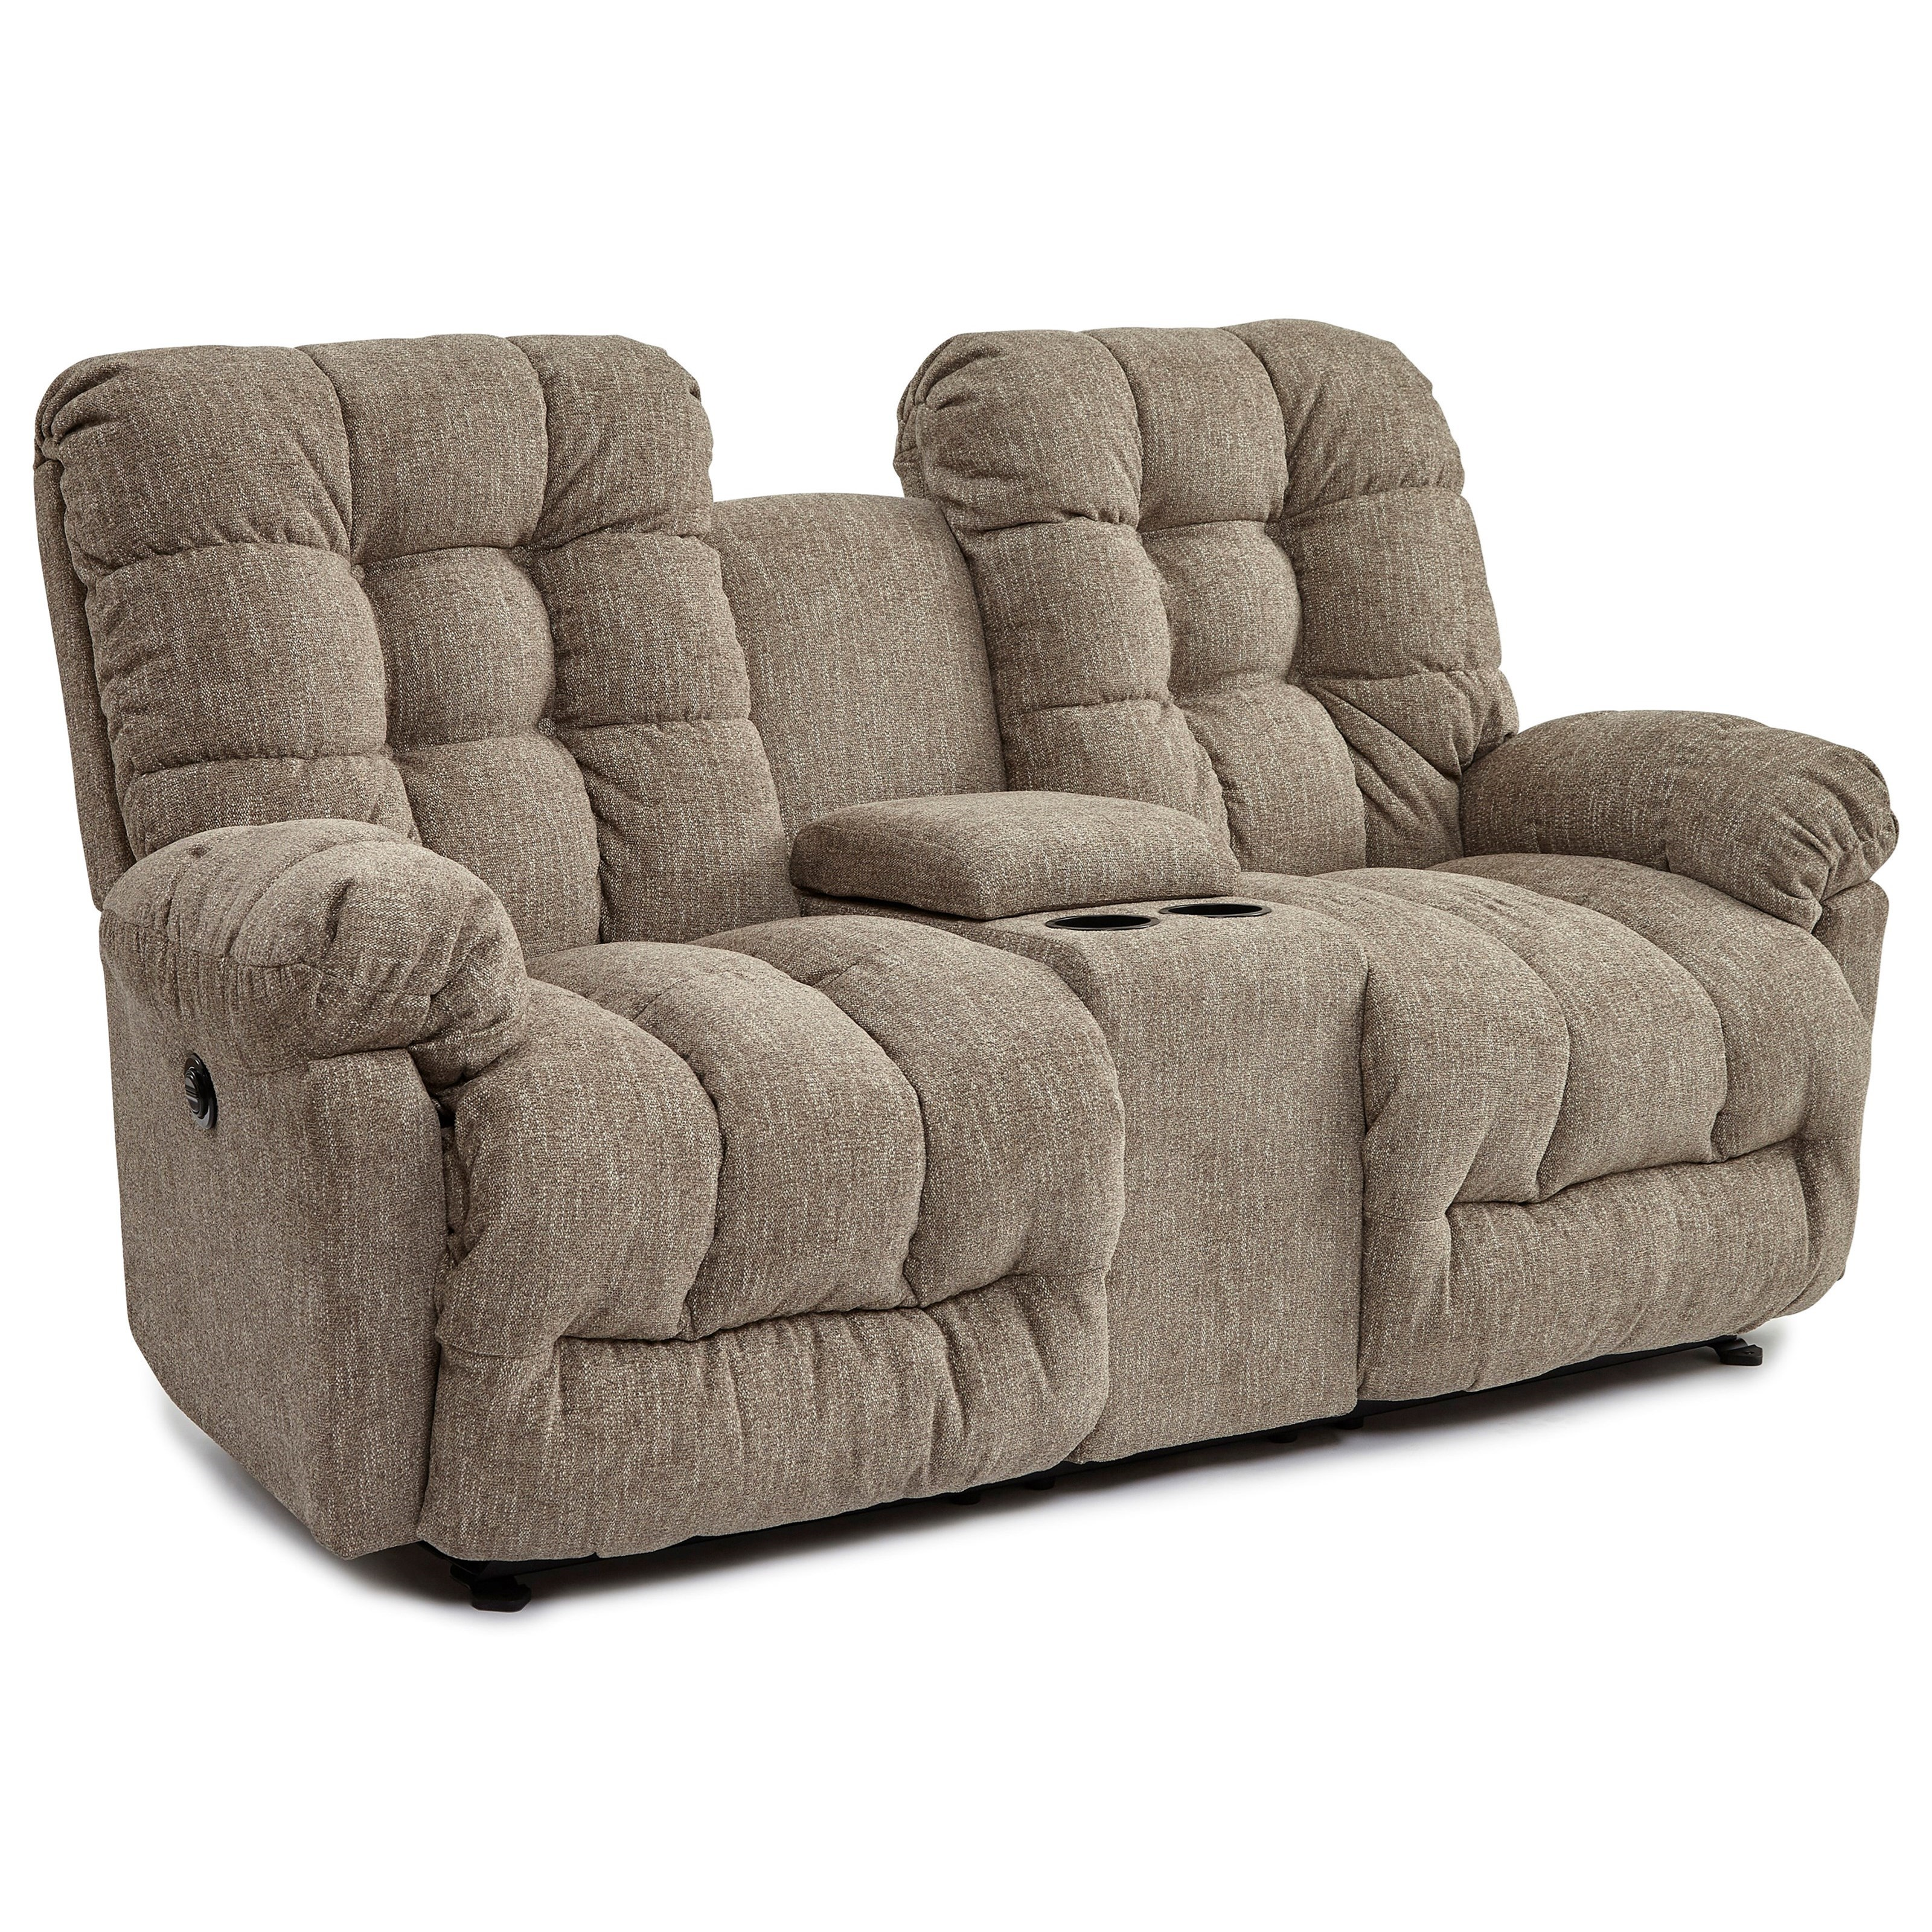 Everlasting Pwr Recl Wall Love w/ Pwr Headrest & Consol  by Best Home Furnishings at Baer's Furniture